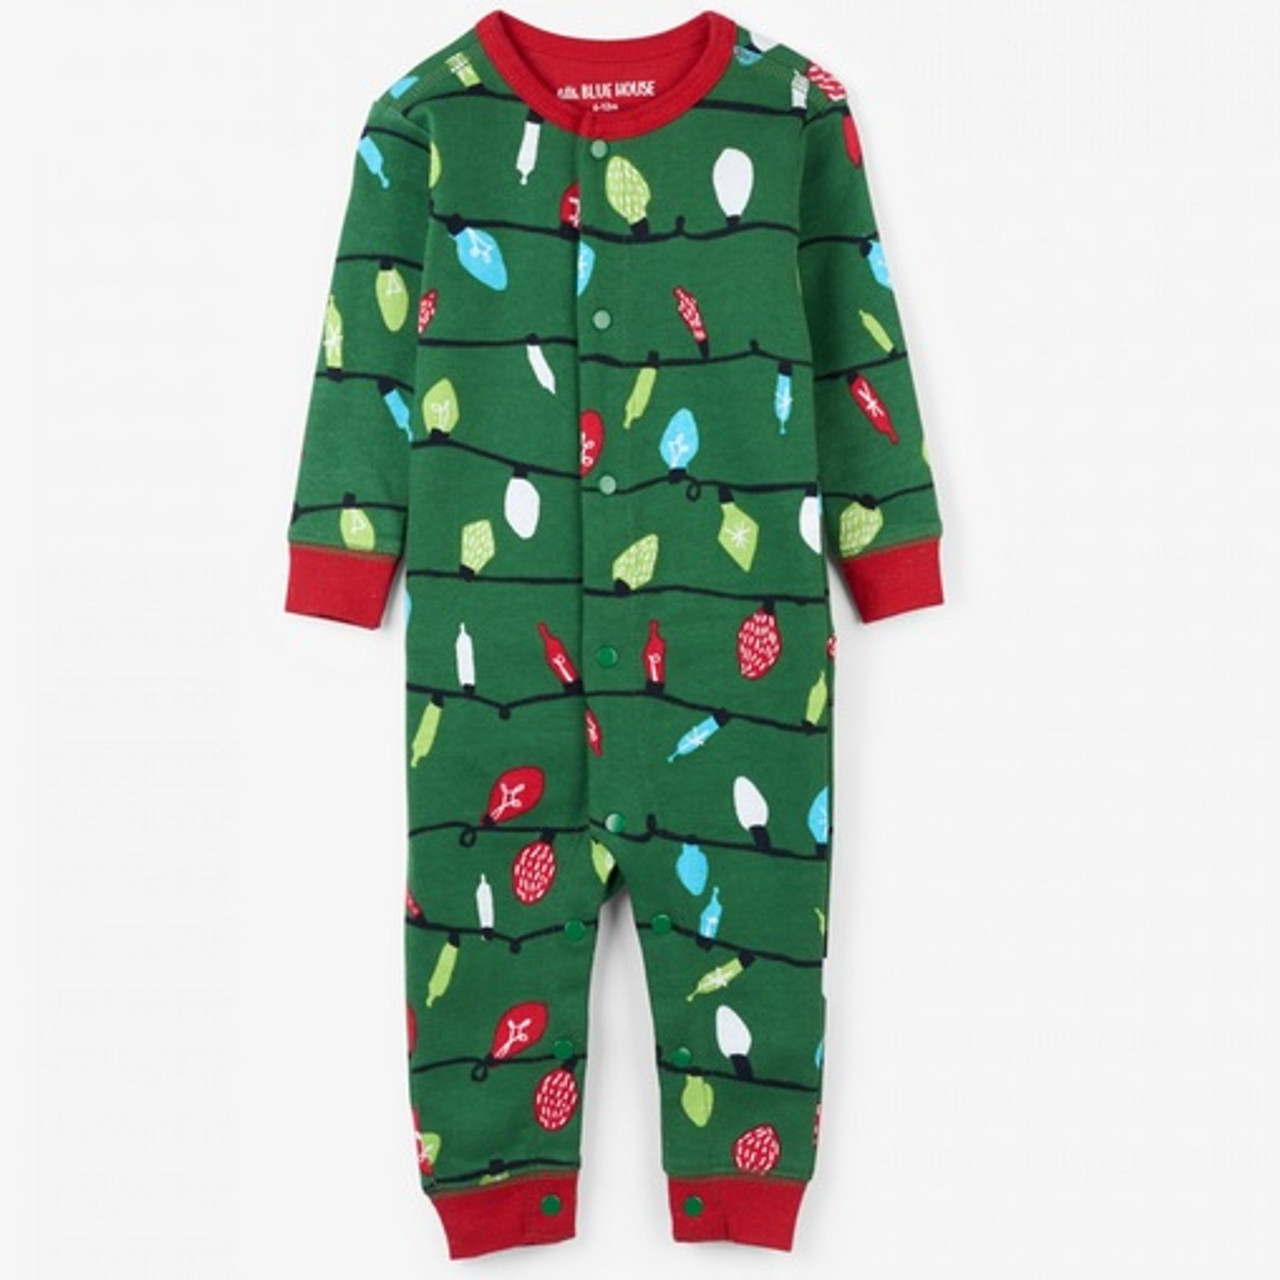 Christmas Onesies.Northern Lights Baby Christmas Onesie By Hatley